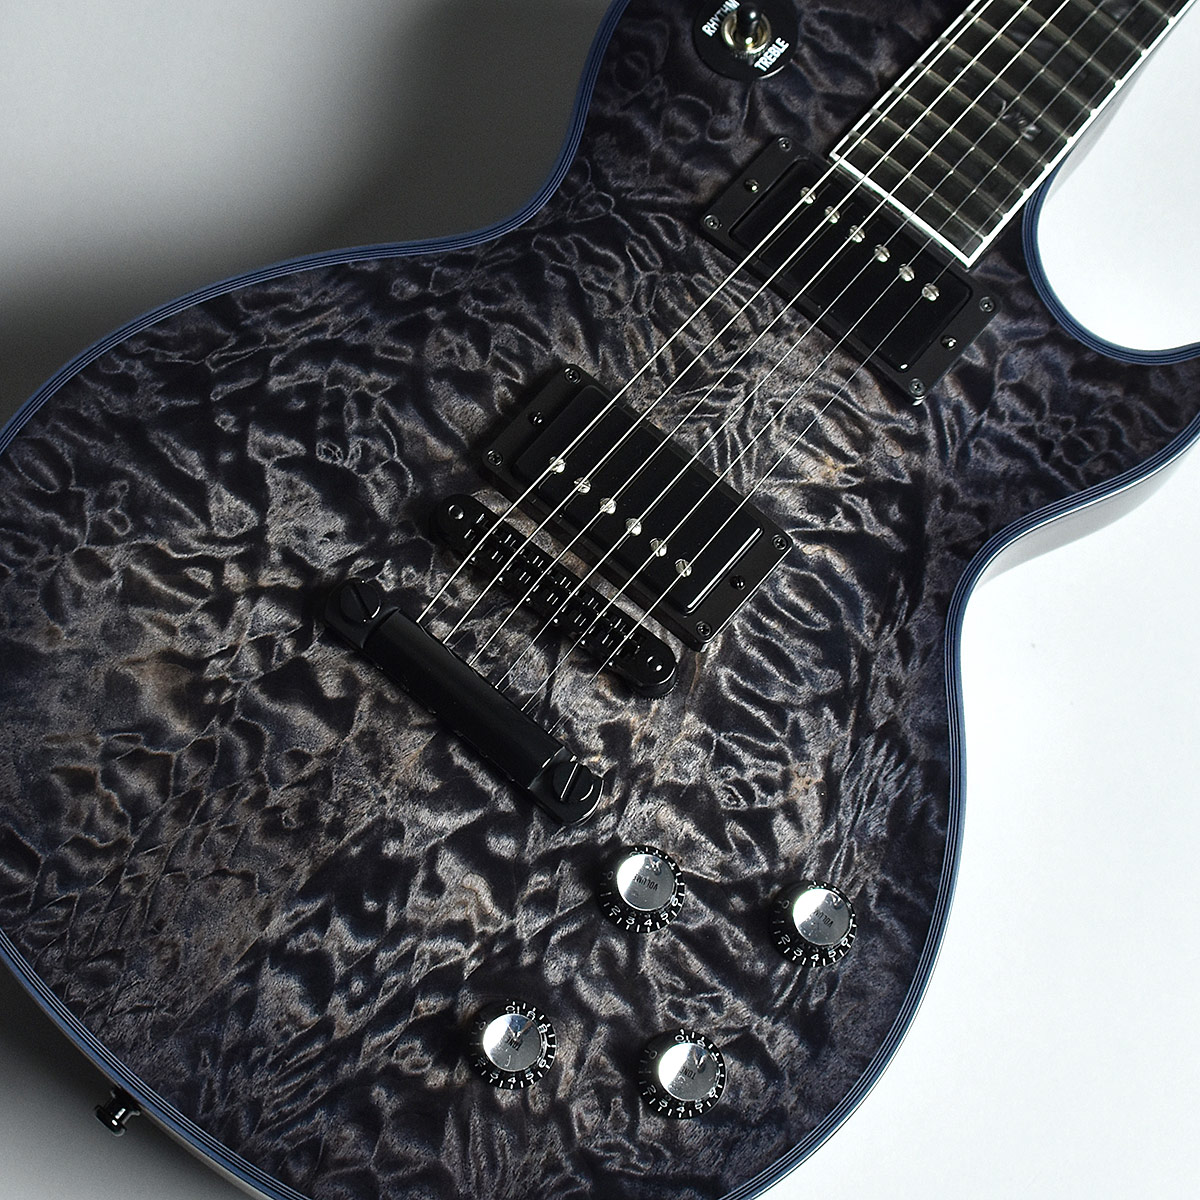 Gibson Custom Shop Les Paul Custom 3A Quilted Maple Charcoal Widow M2M S/N:CS800055 【現地選定品】 【ギブソン カスタムショップ】【未展示品】